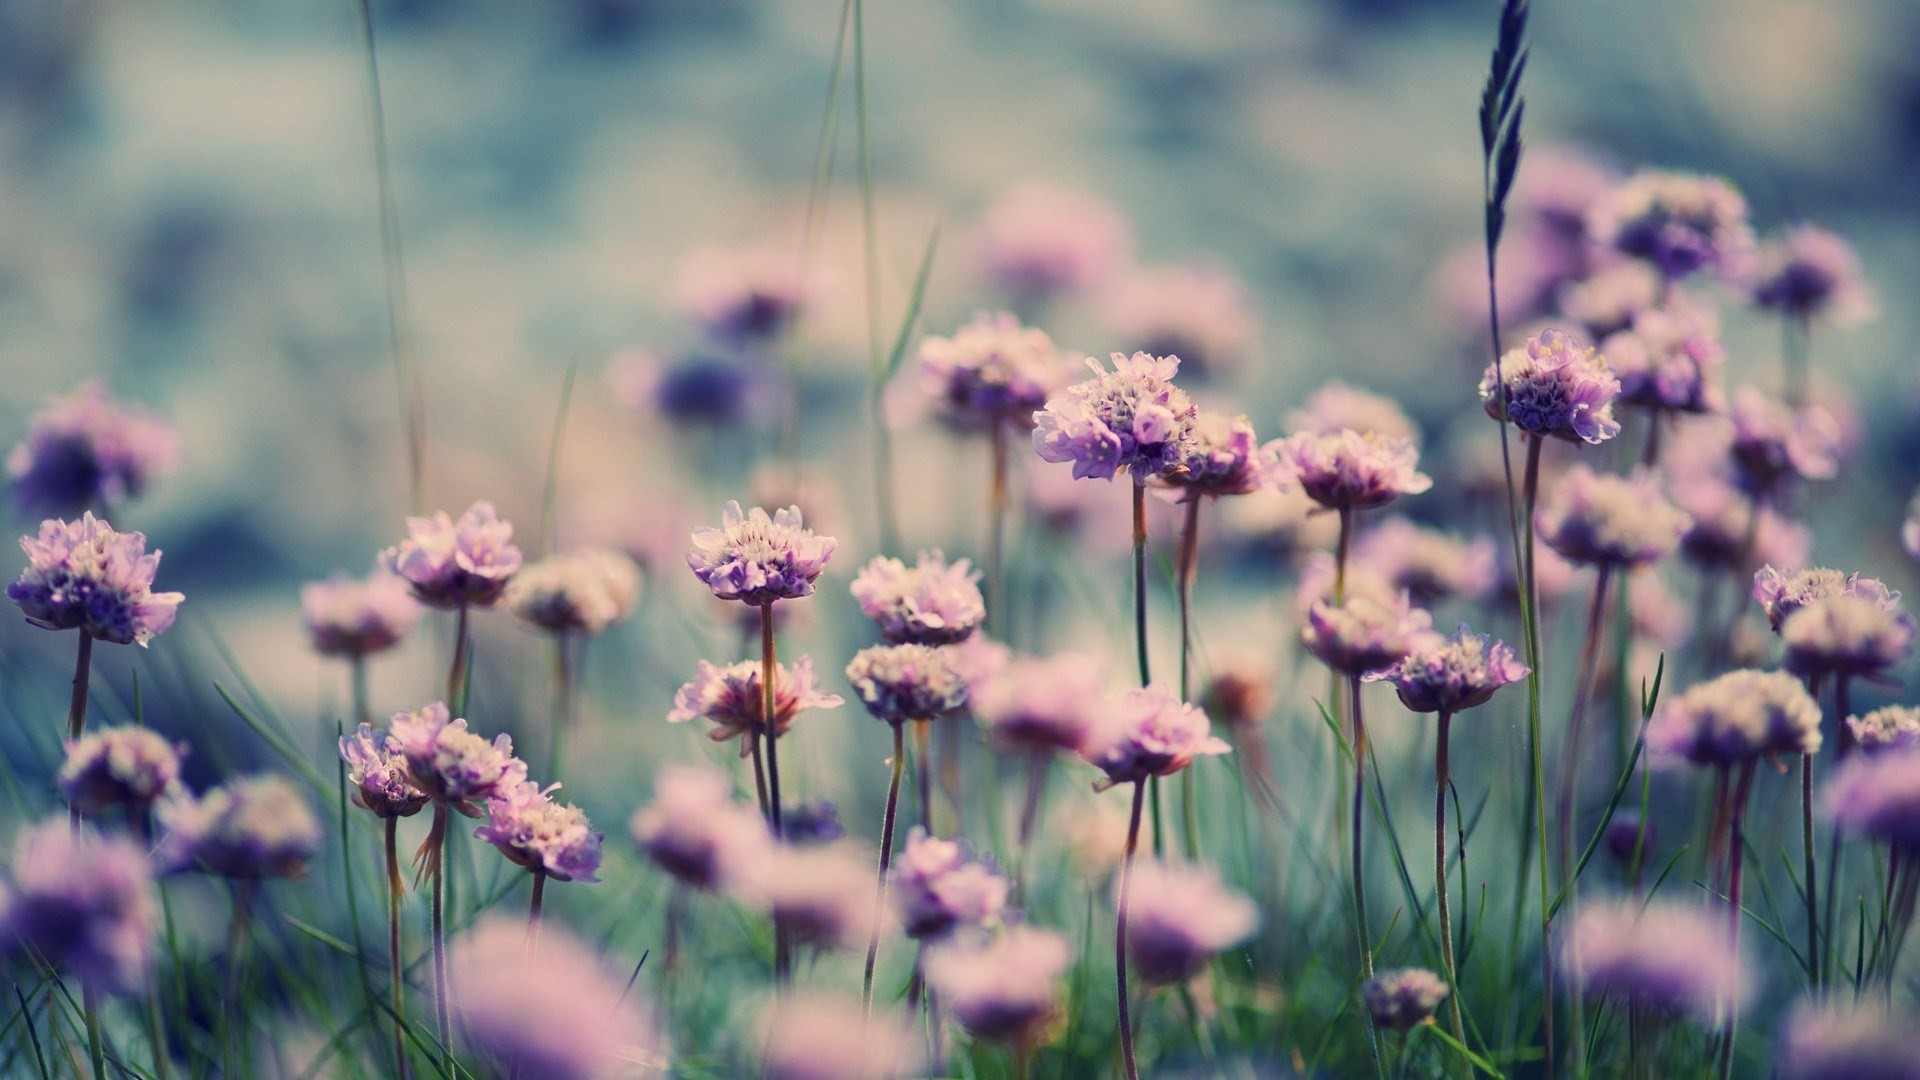 Field Of Flowers Wallpaper 58 Images